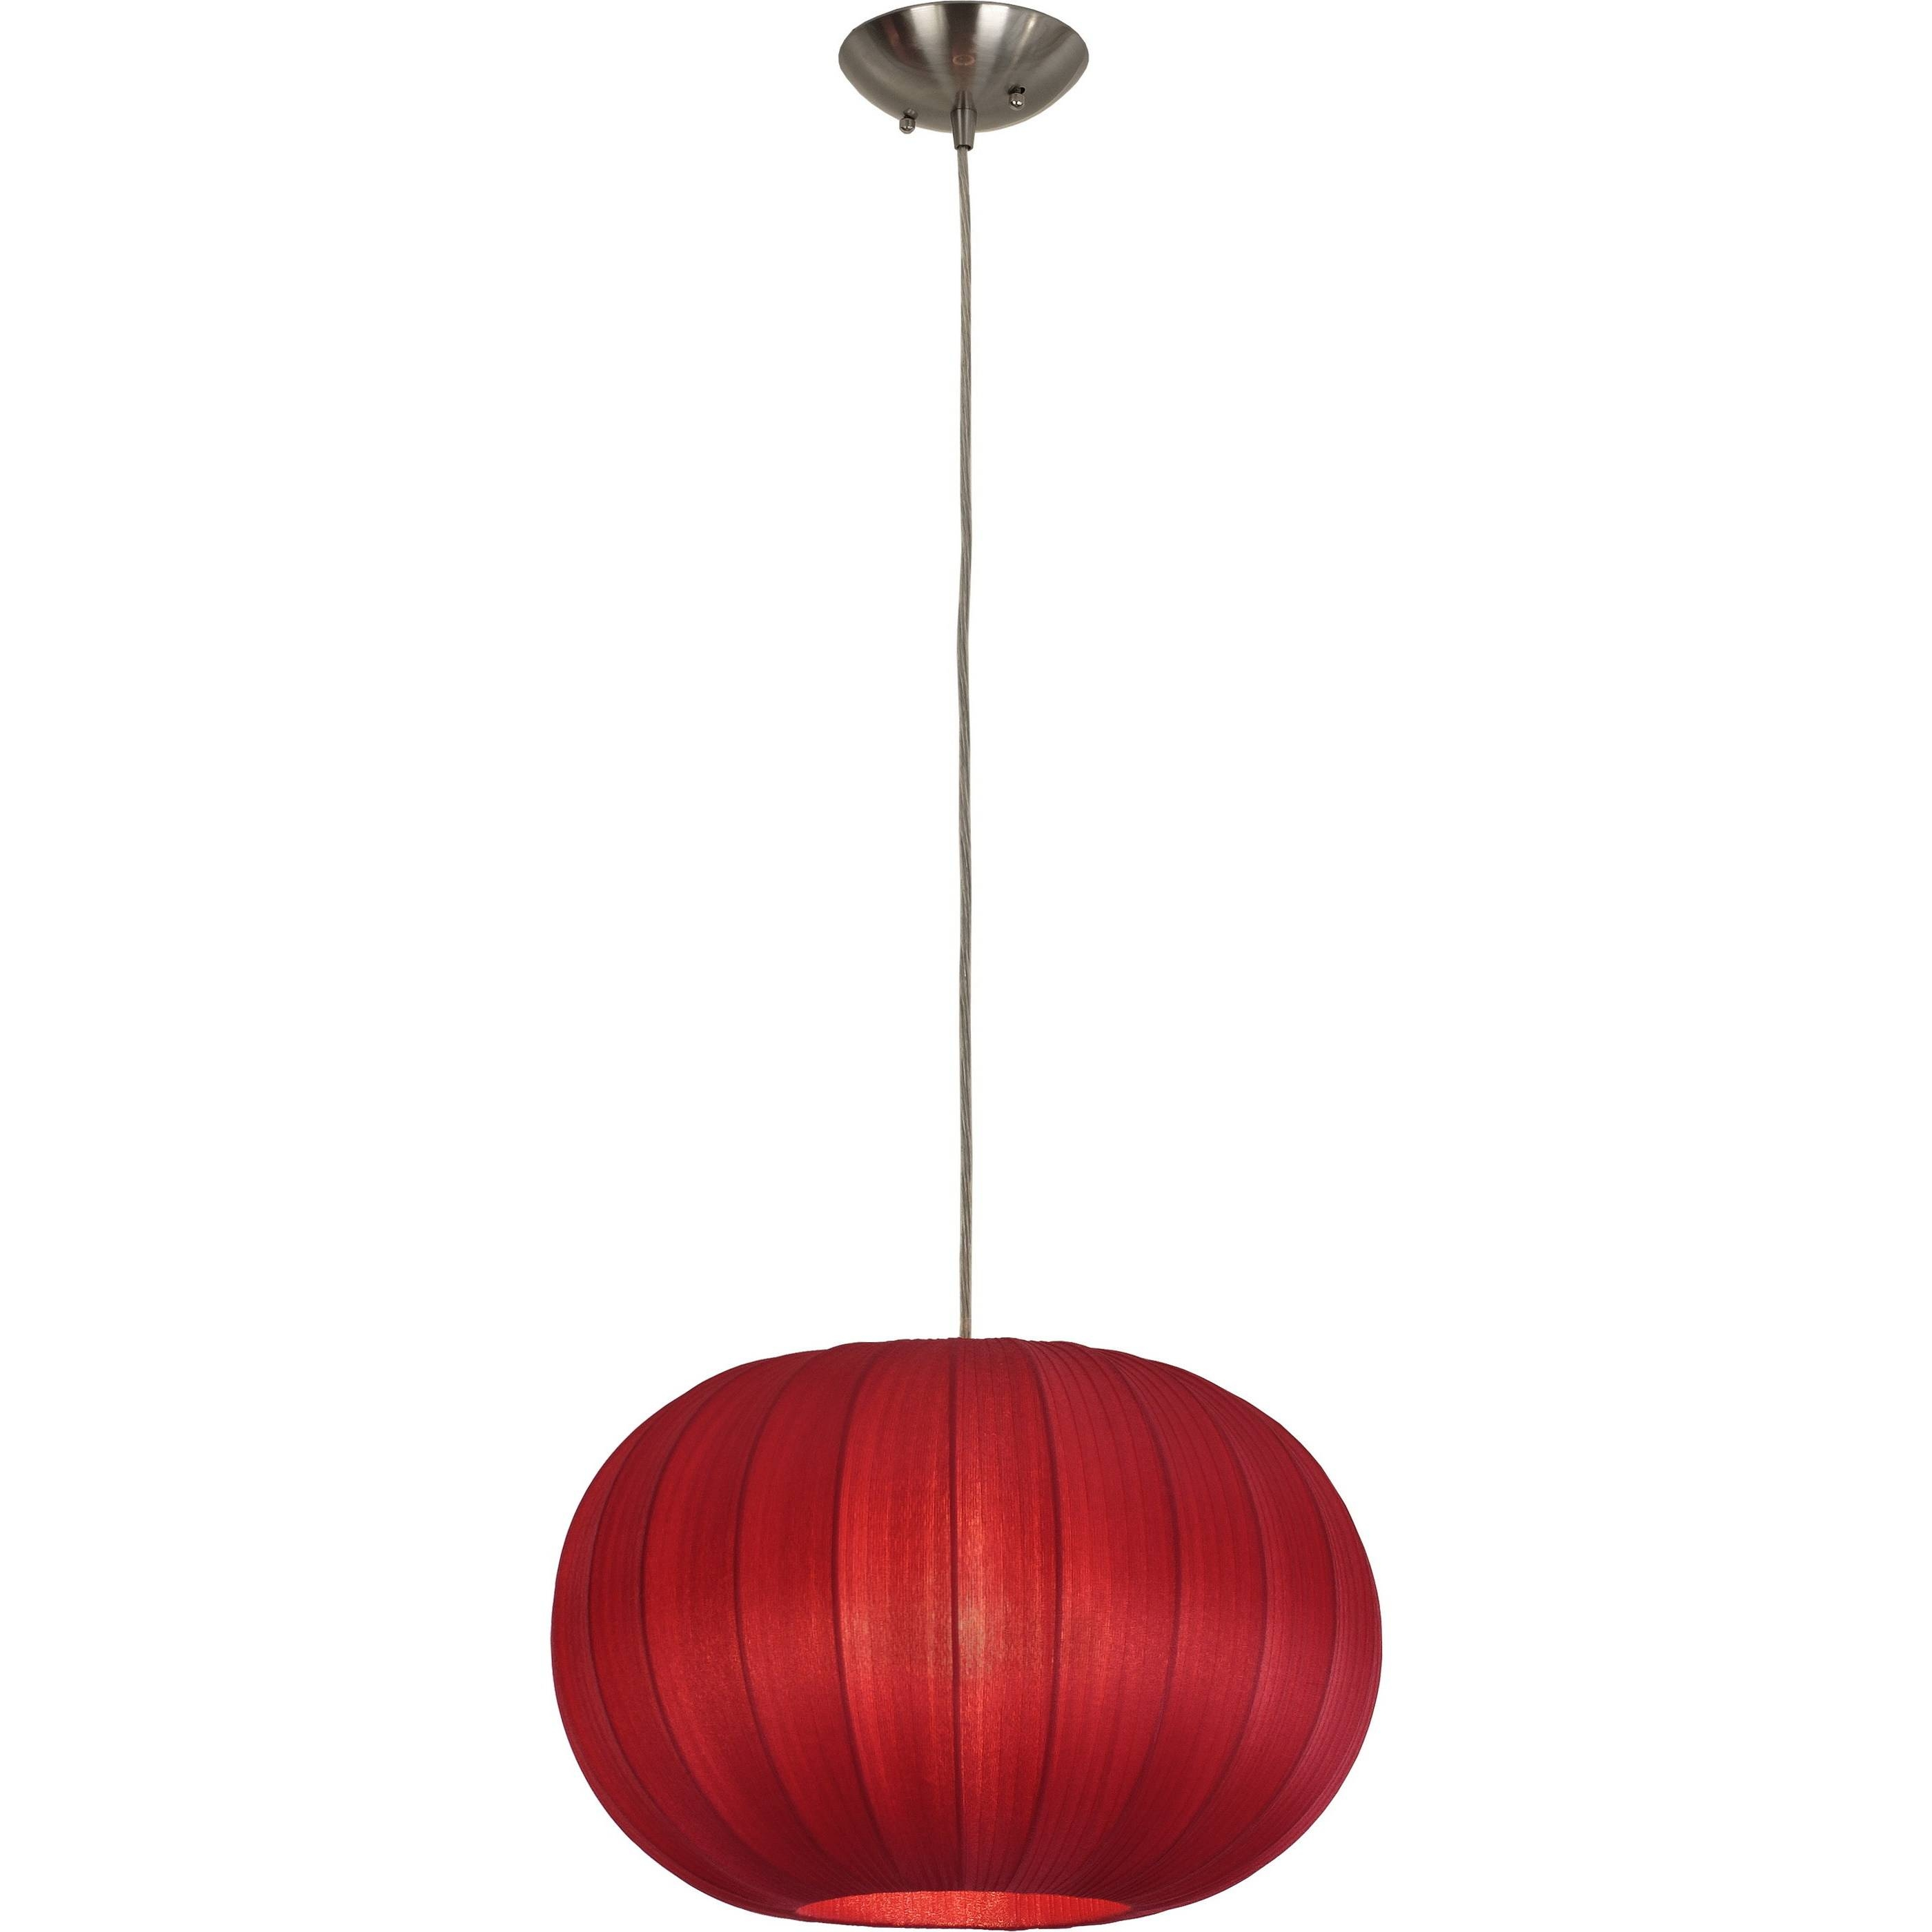 Red Pendant Lights For Kitchen ~ Picgit Intended For Modern Red Pendant Lighting (View 10 of 15)